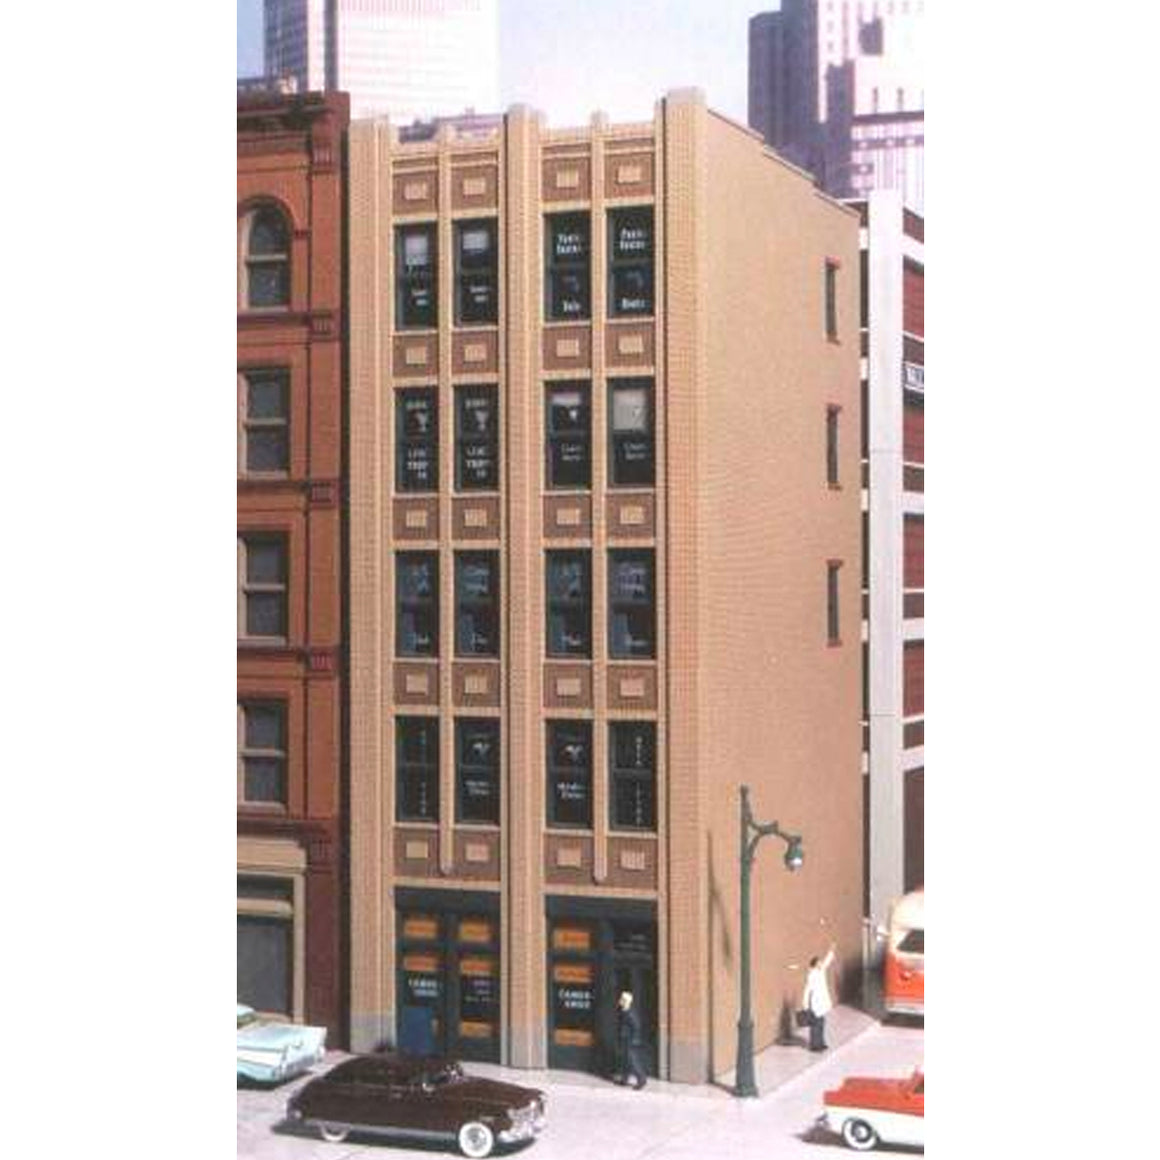 HO Scale: Baum Boulevard Art Deco Building - Kit